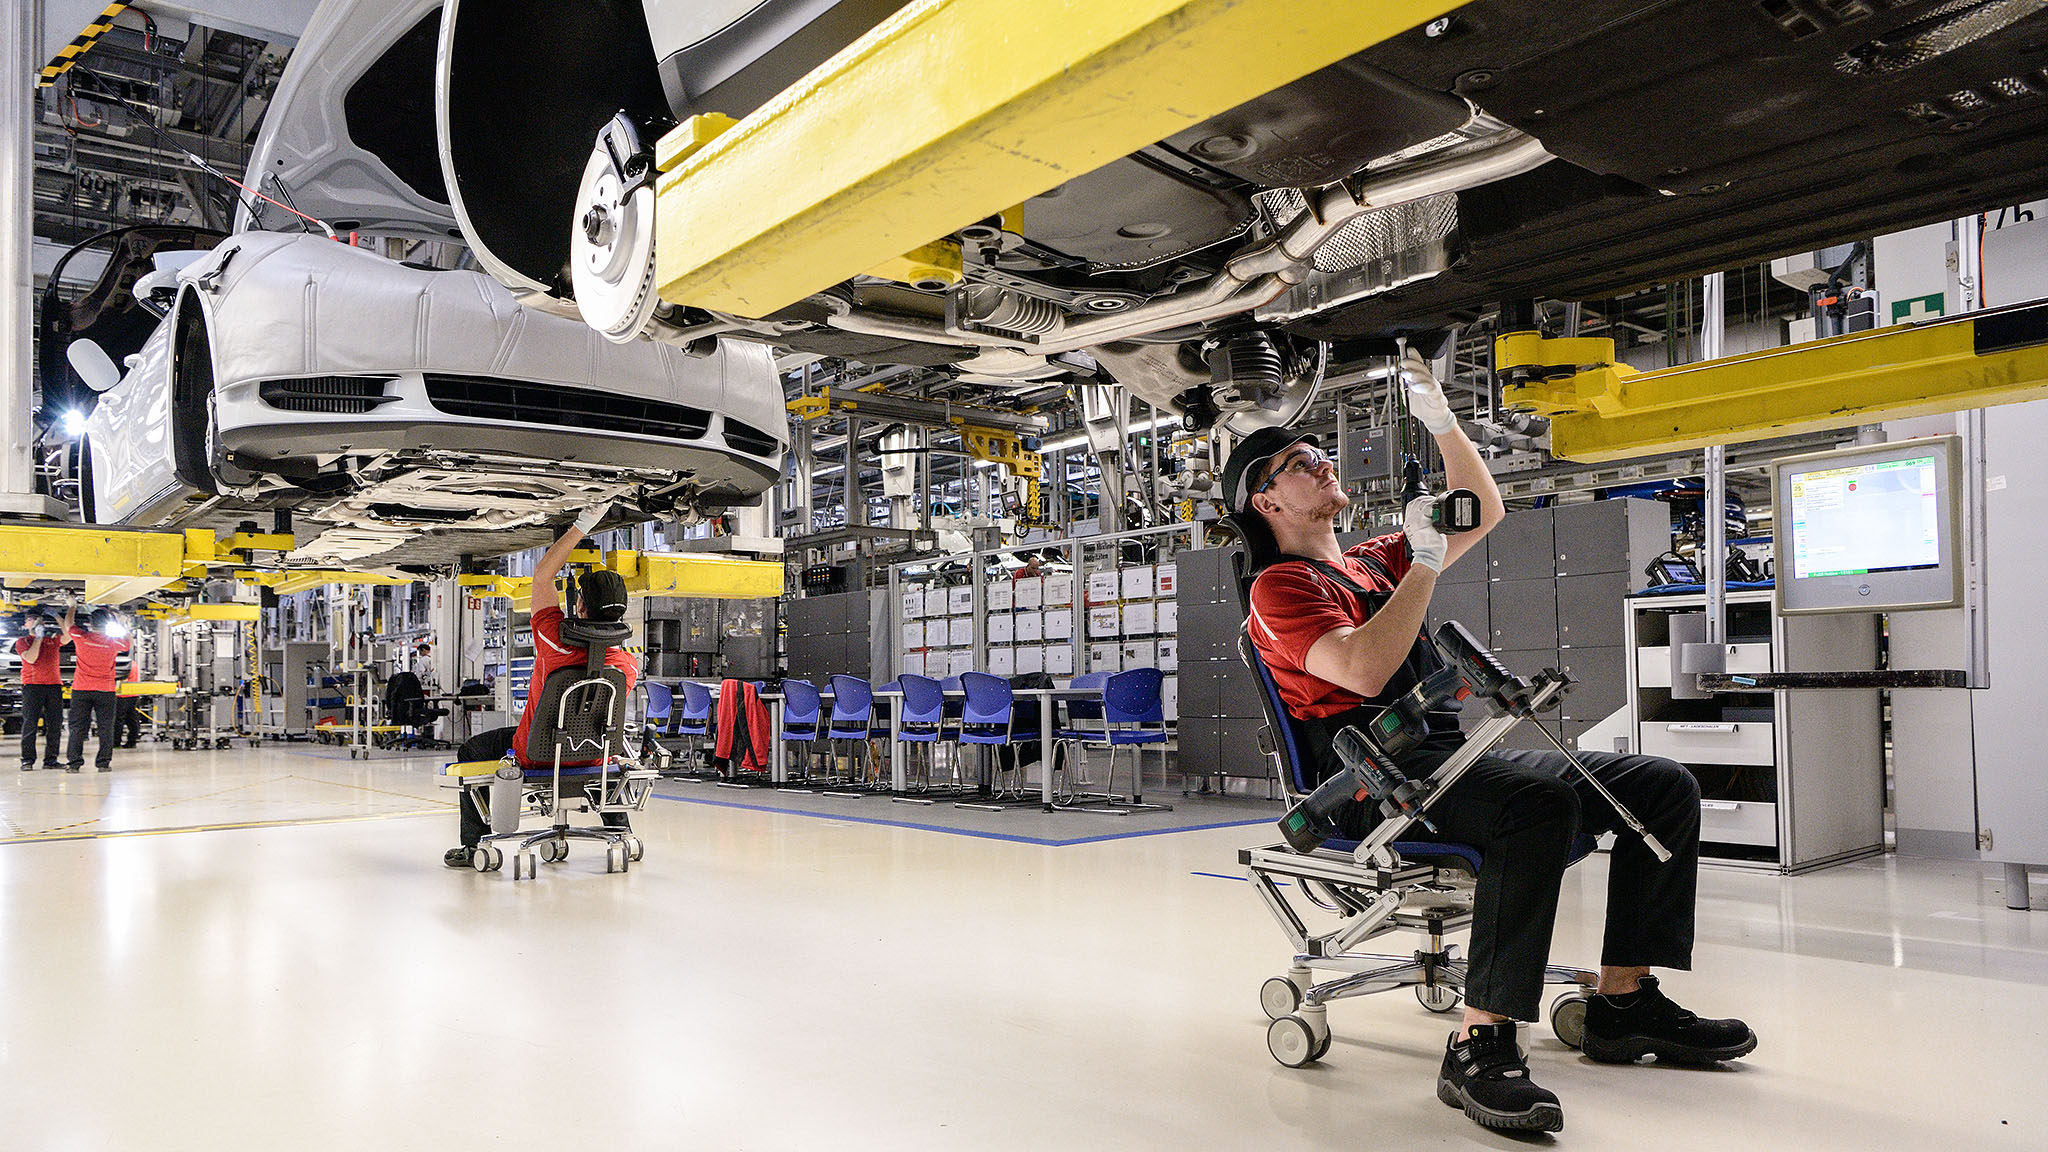 Germany Invests To Prolong Employees Working Lives Financial Times